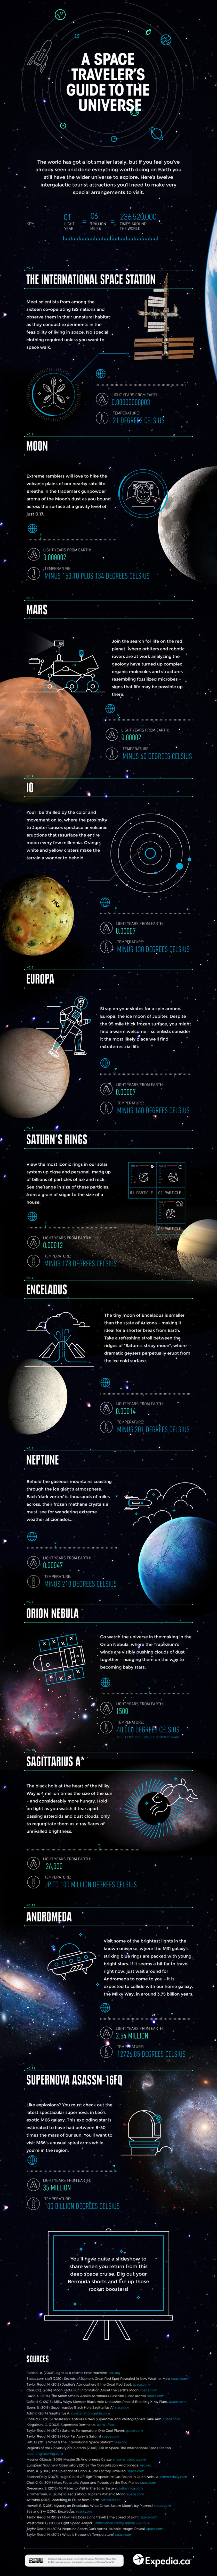 Intergalactic Attractions Every Space Tourist Must Visit Infographic